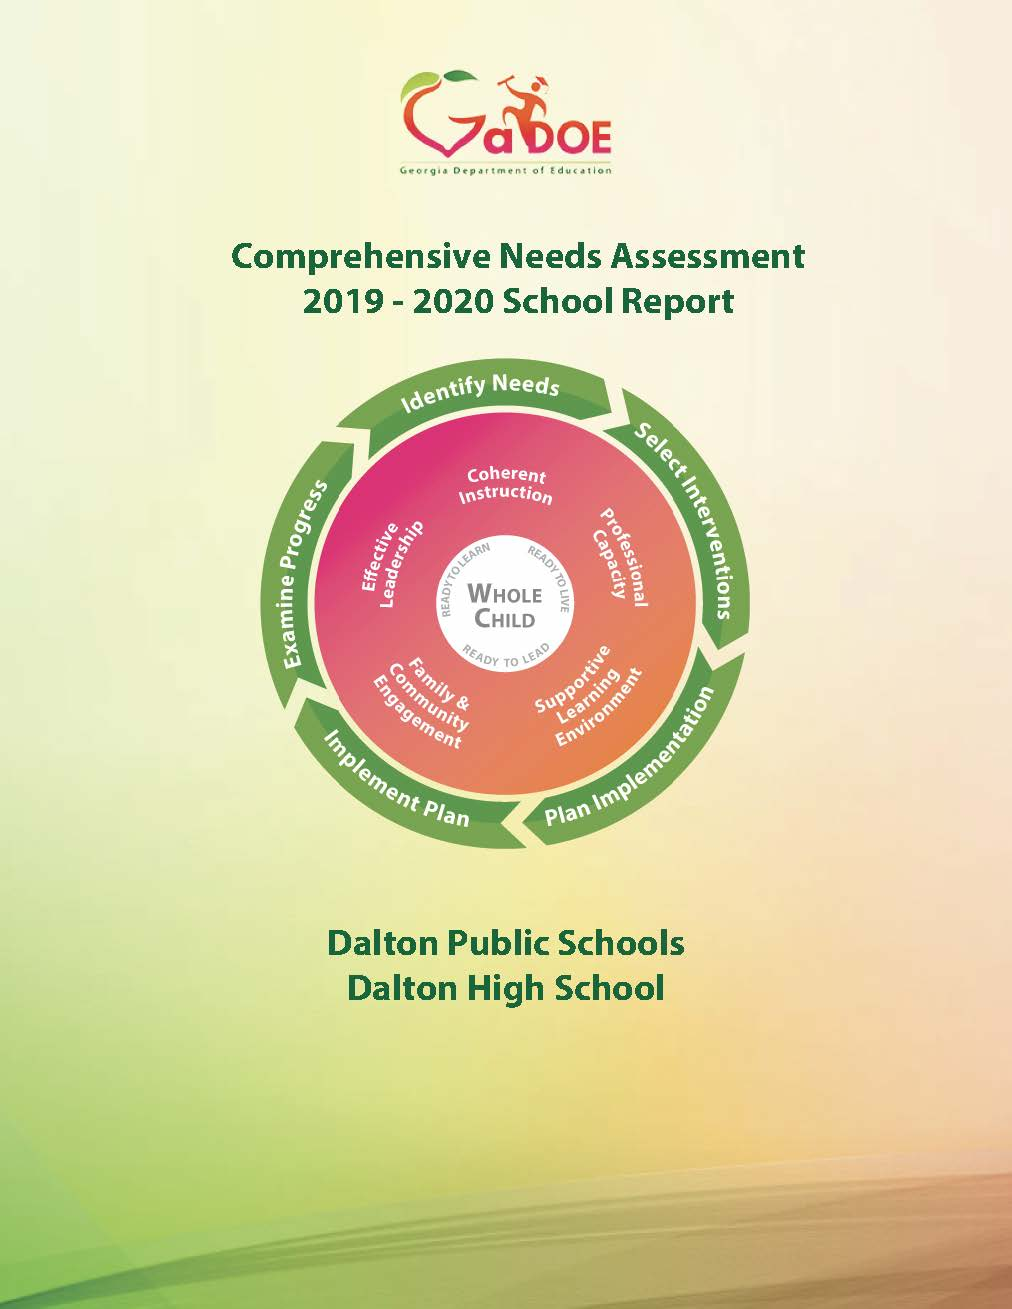 Consolidated Needs Assessment graphic